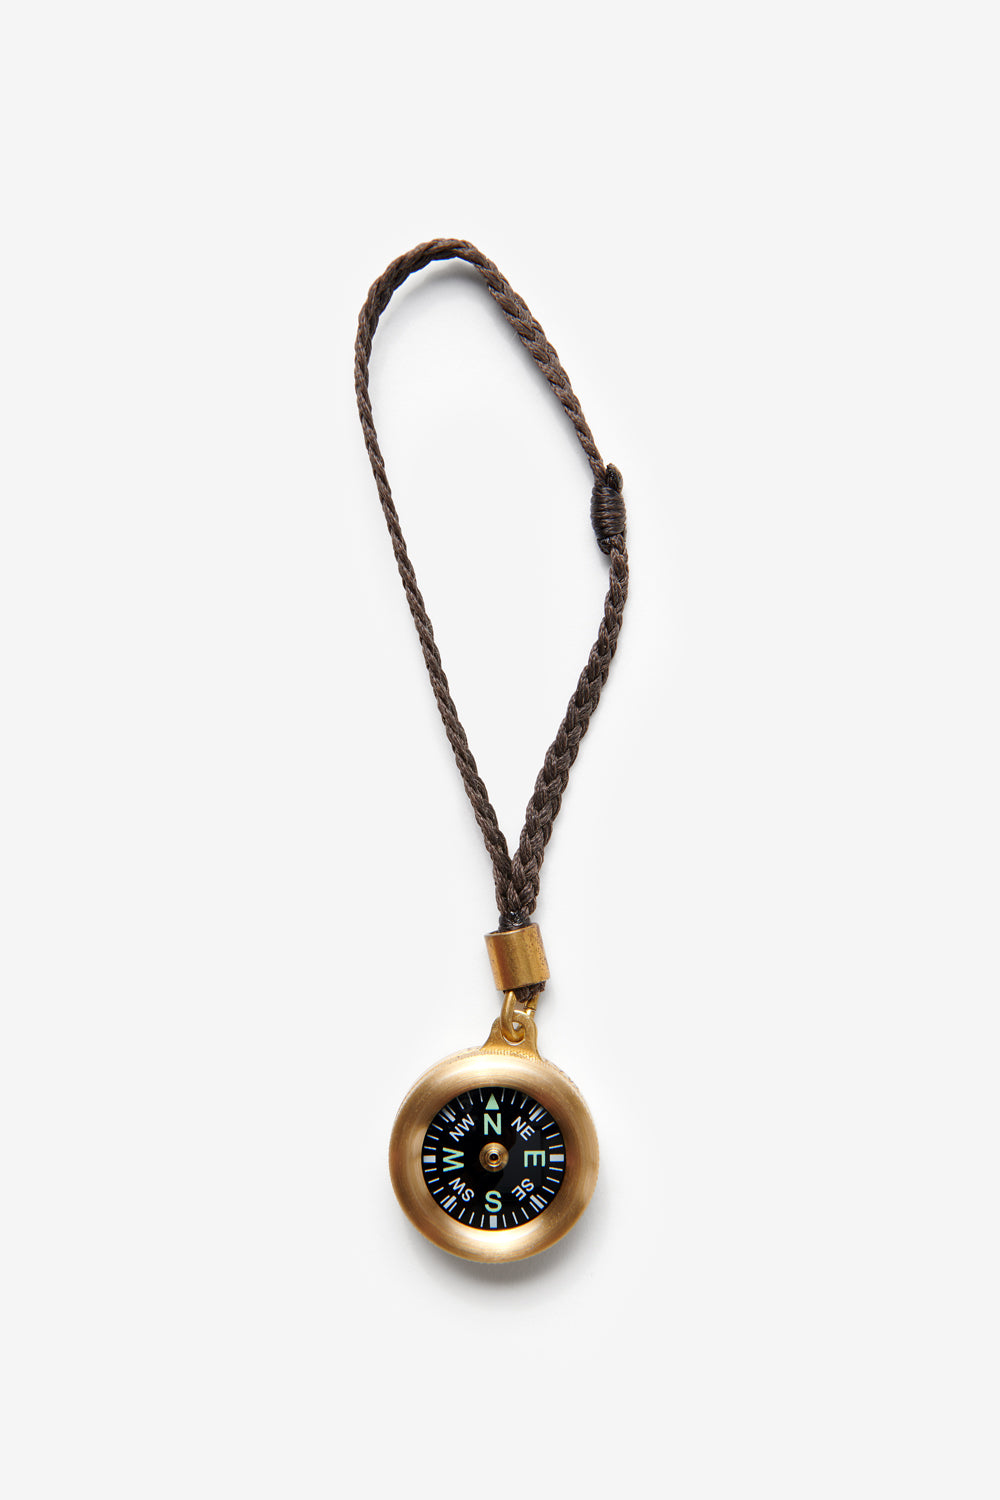 Alabama Chanin Traveler's Compass in Brass with Brown Leather Strap